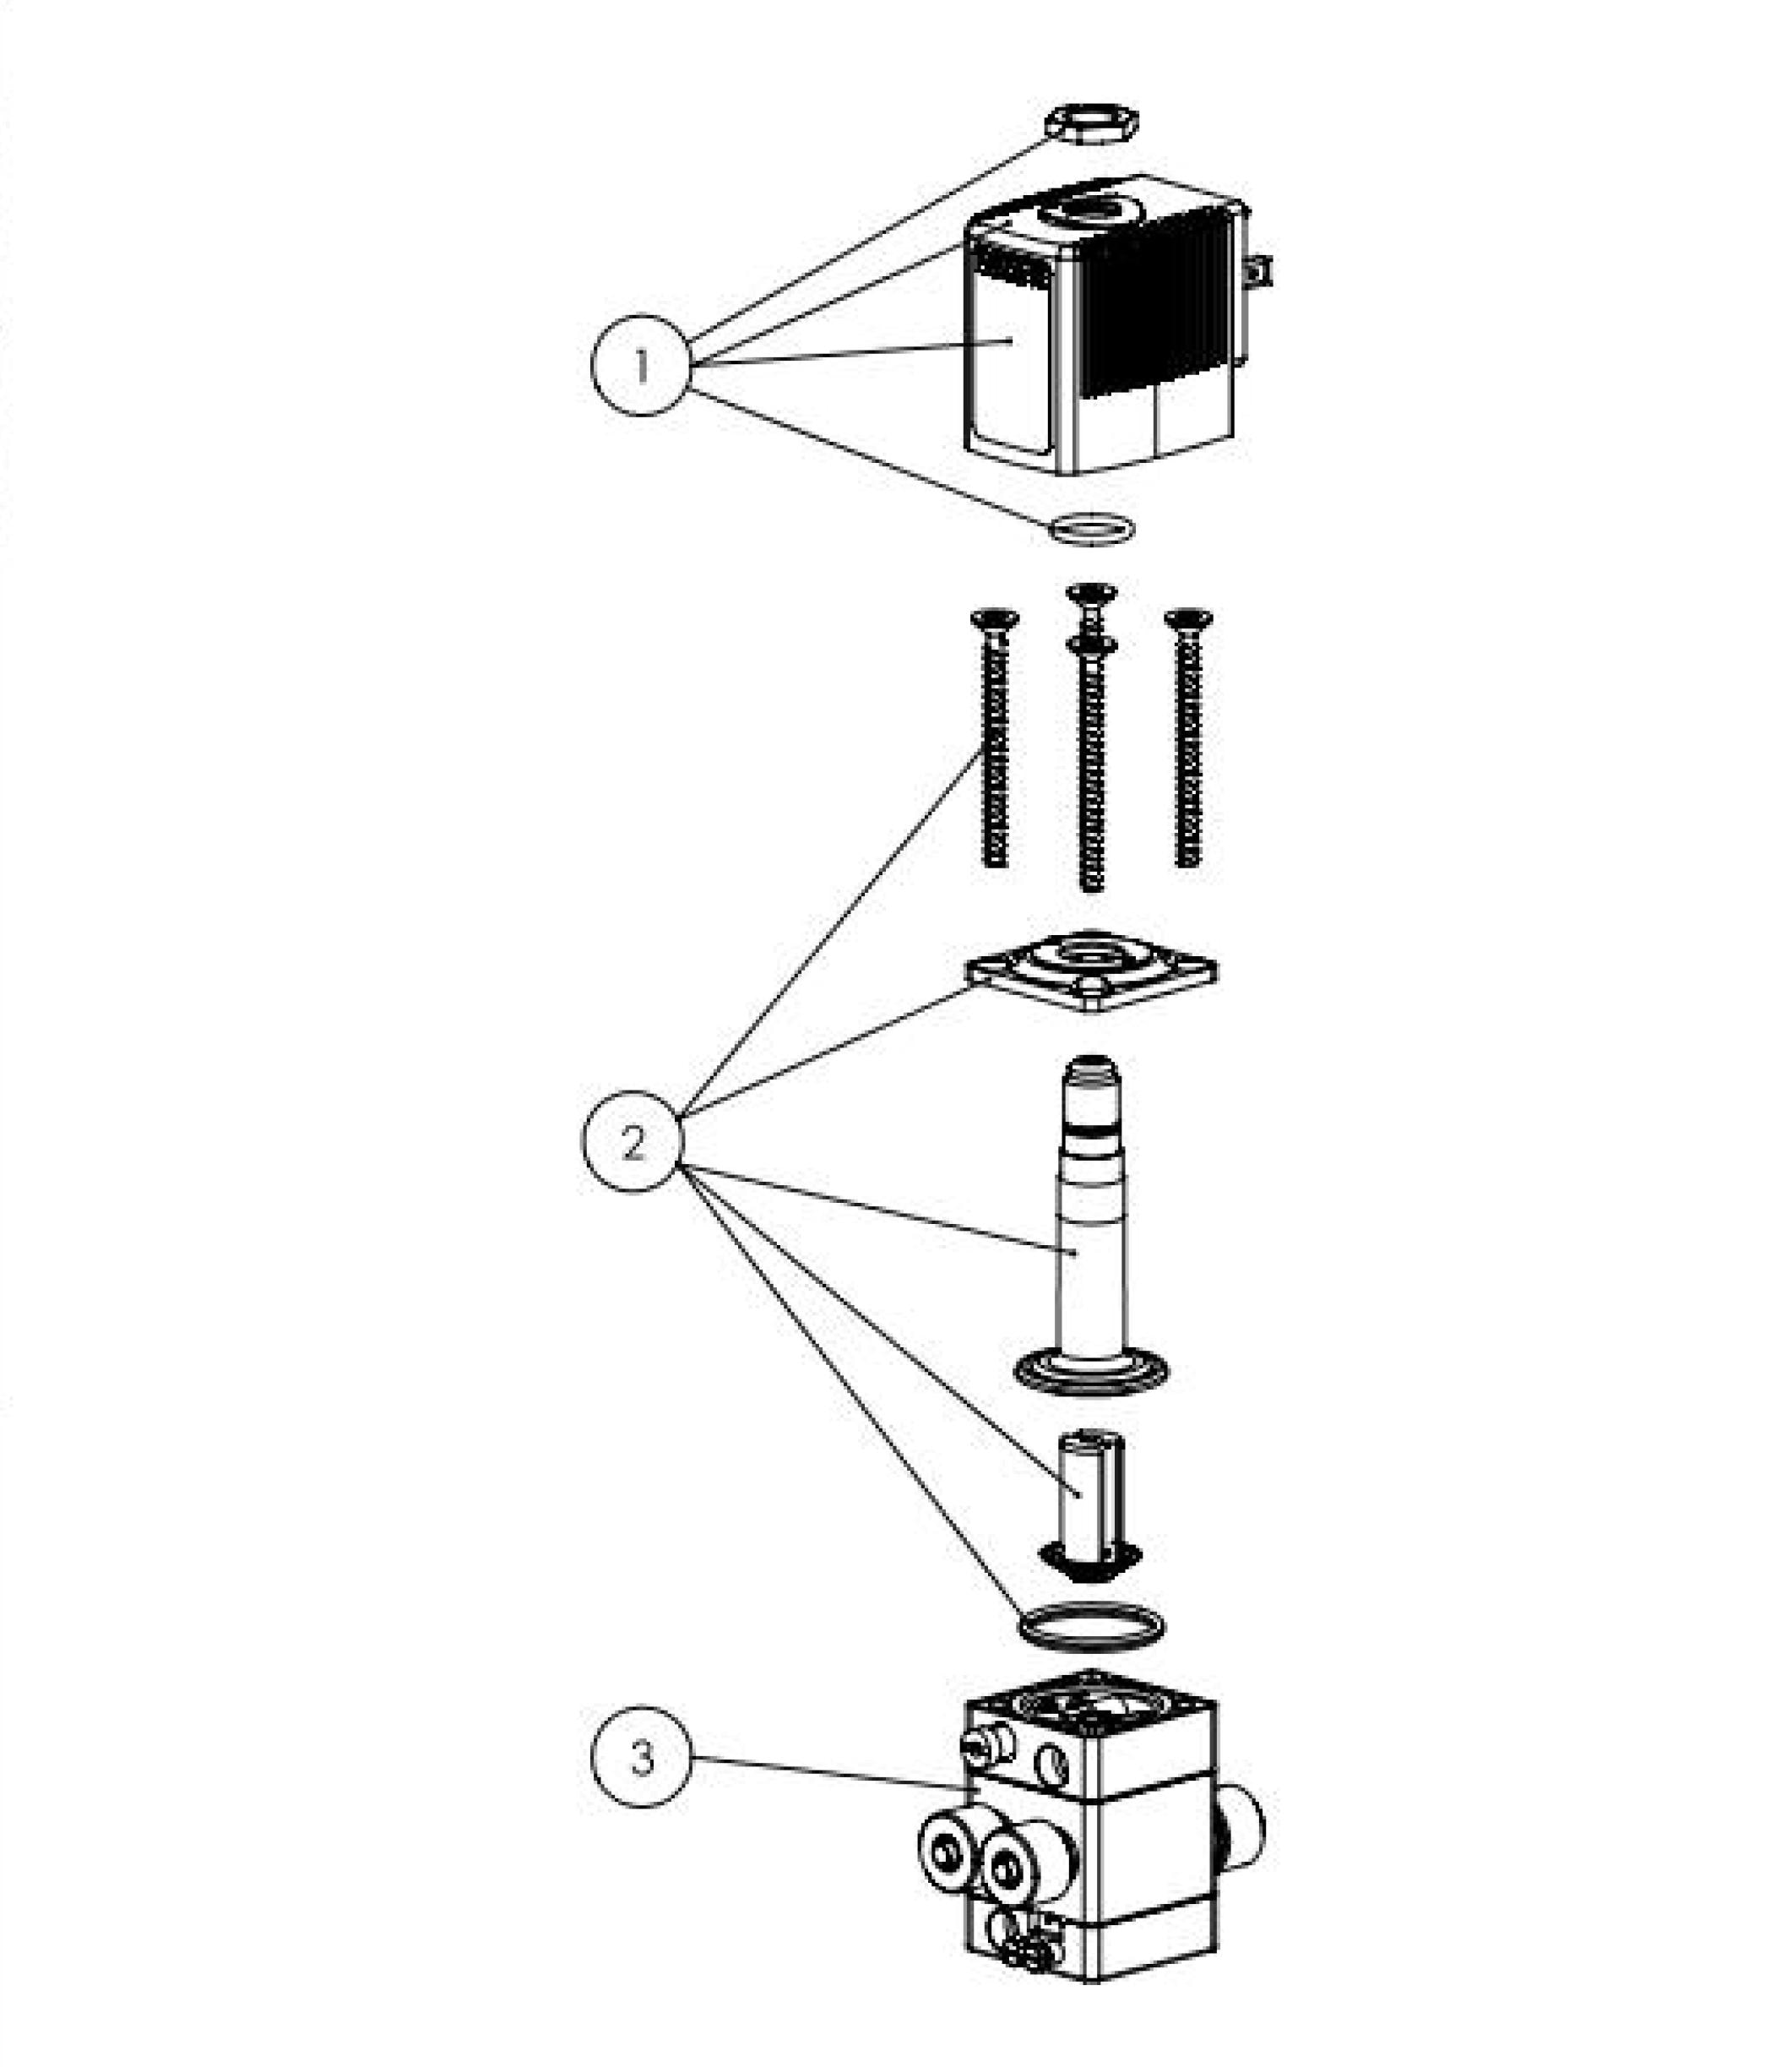 134633 4 2 Way Pneumatic Valve Valves Switch Click To Enlarge